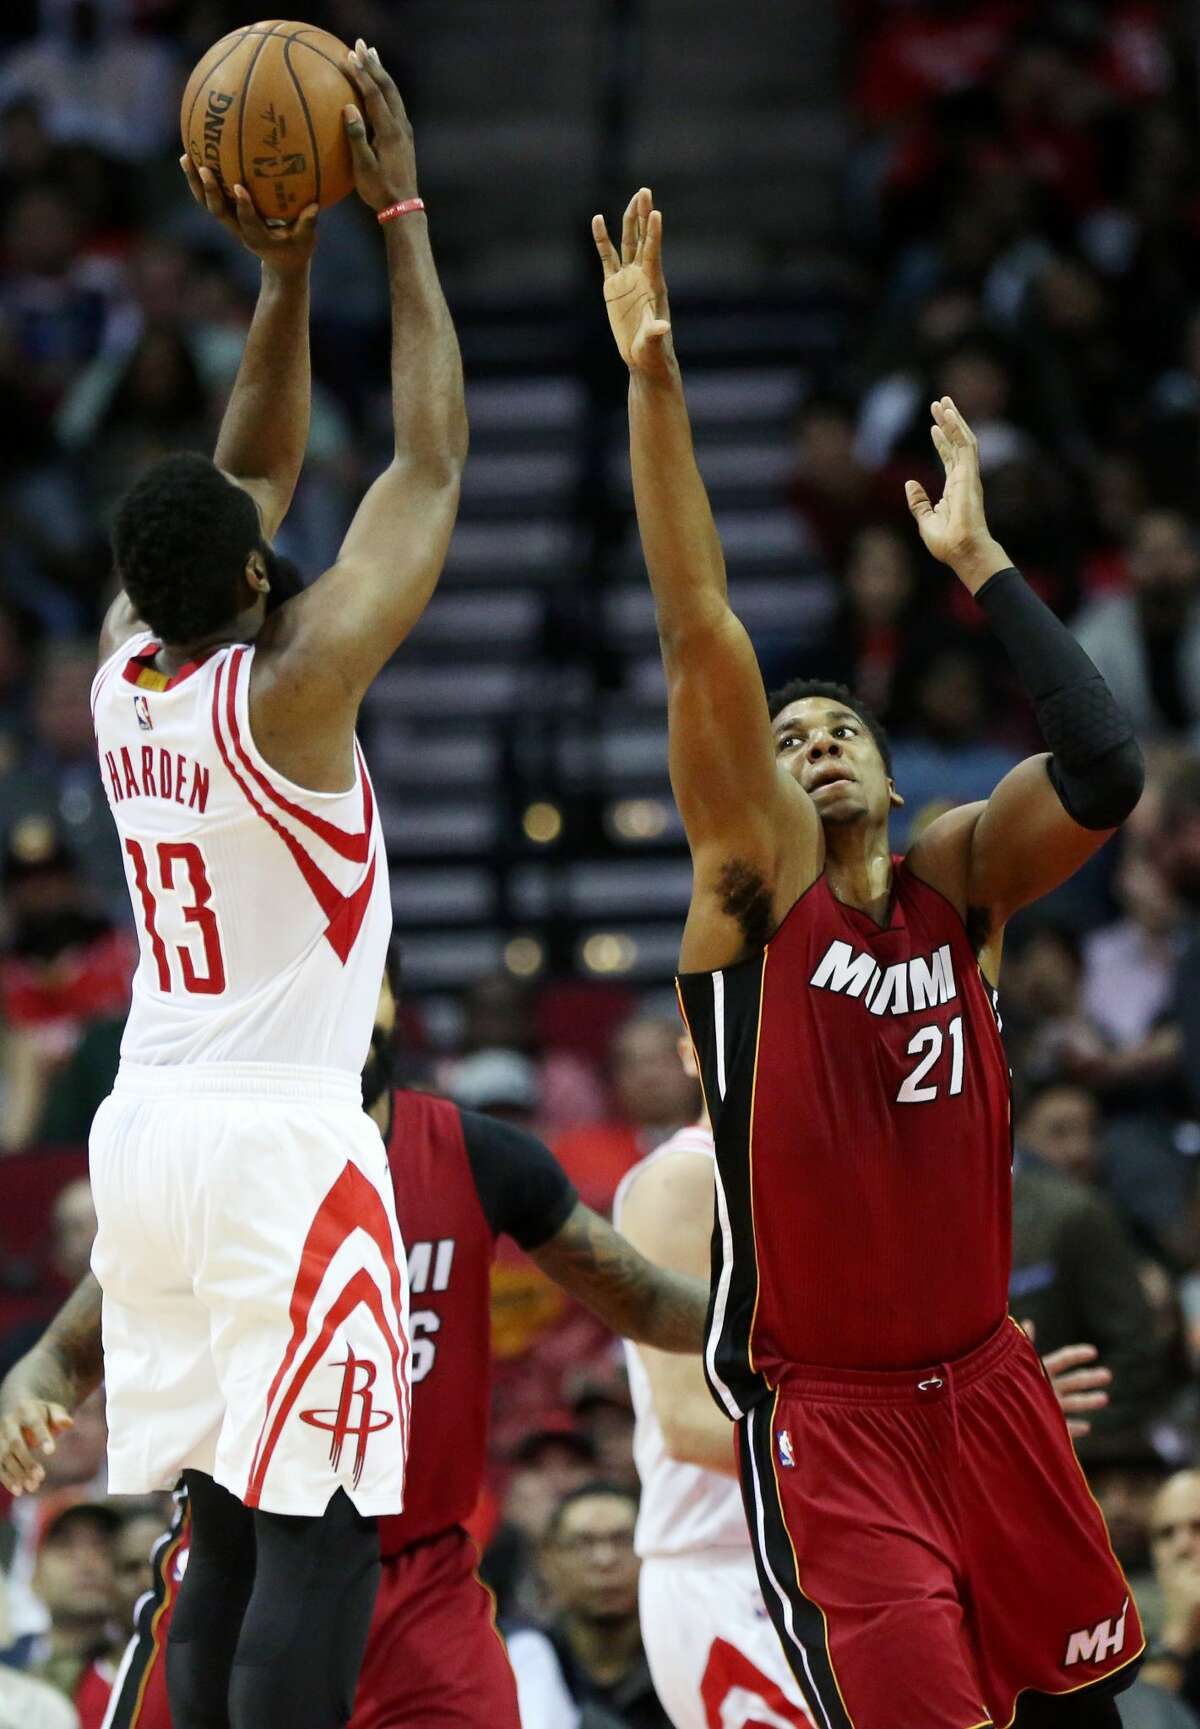 Houston Rockets guard James Harden (13) makes a shot while Miami Heat center Hassan Whiteside (21) tries to block him during the second half of the game Wednesday, Feb. 15, 2017, in Houston. ( Yi-Chin Lee / Houston Chronicle )